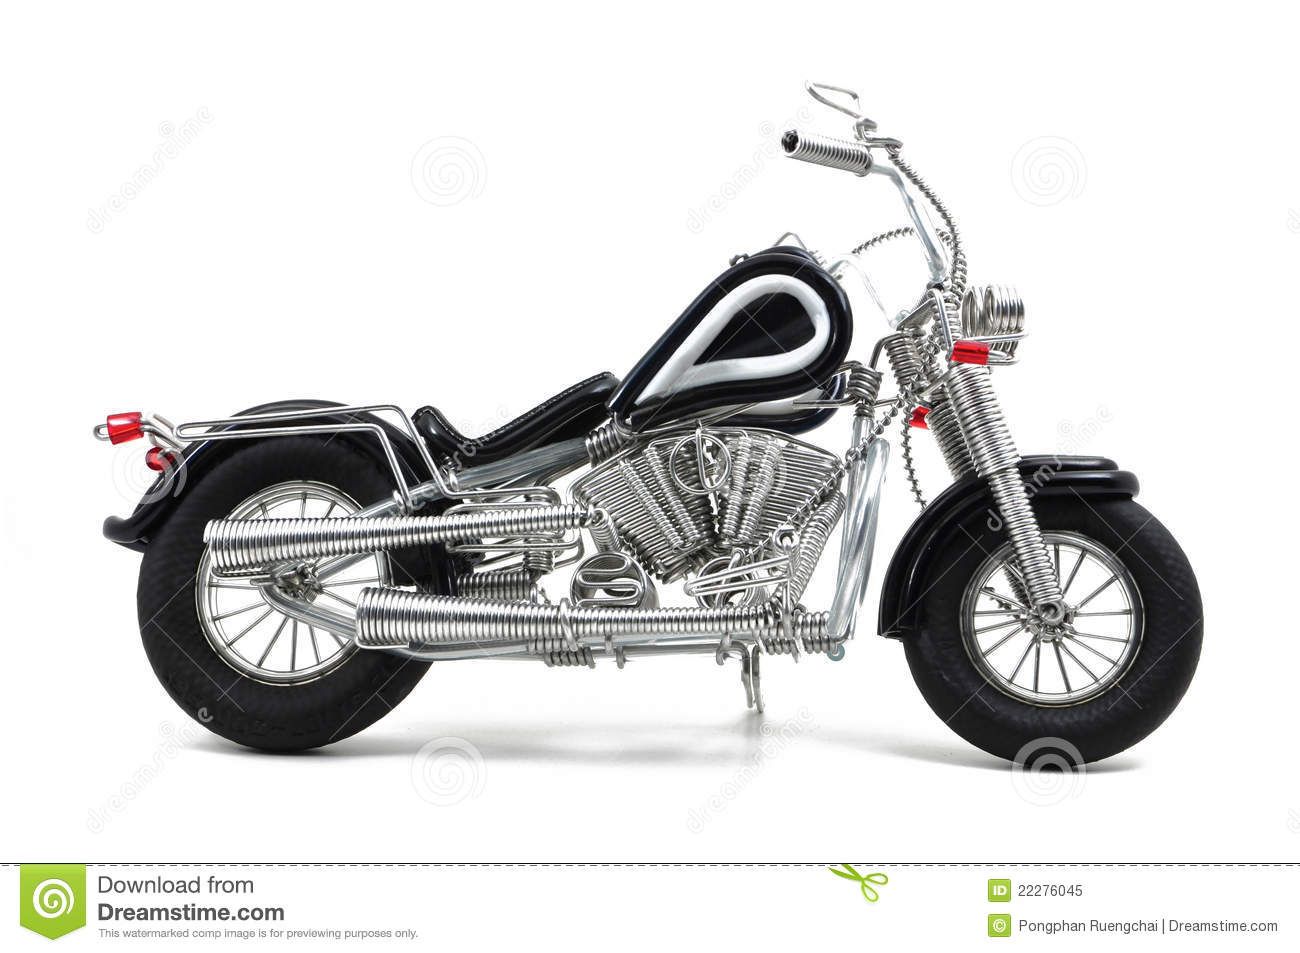 Wire motorcycle stock image. Image of homemade, motorcycle - 22276045